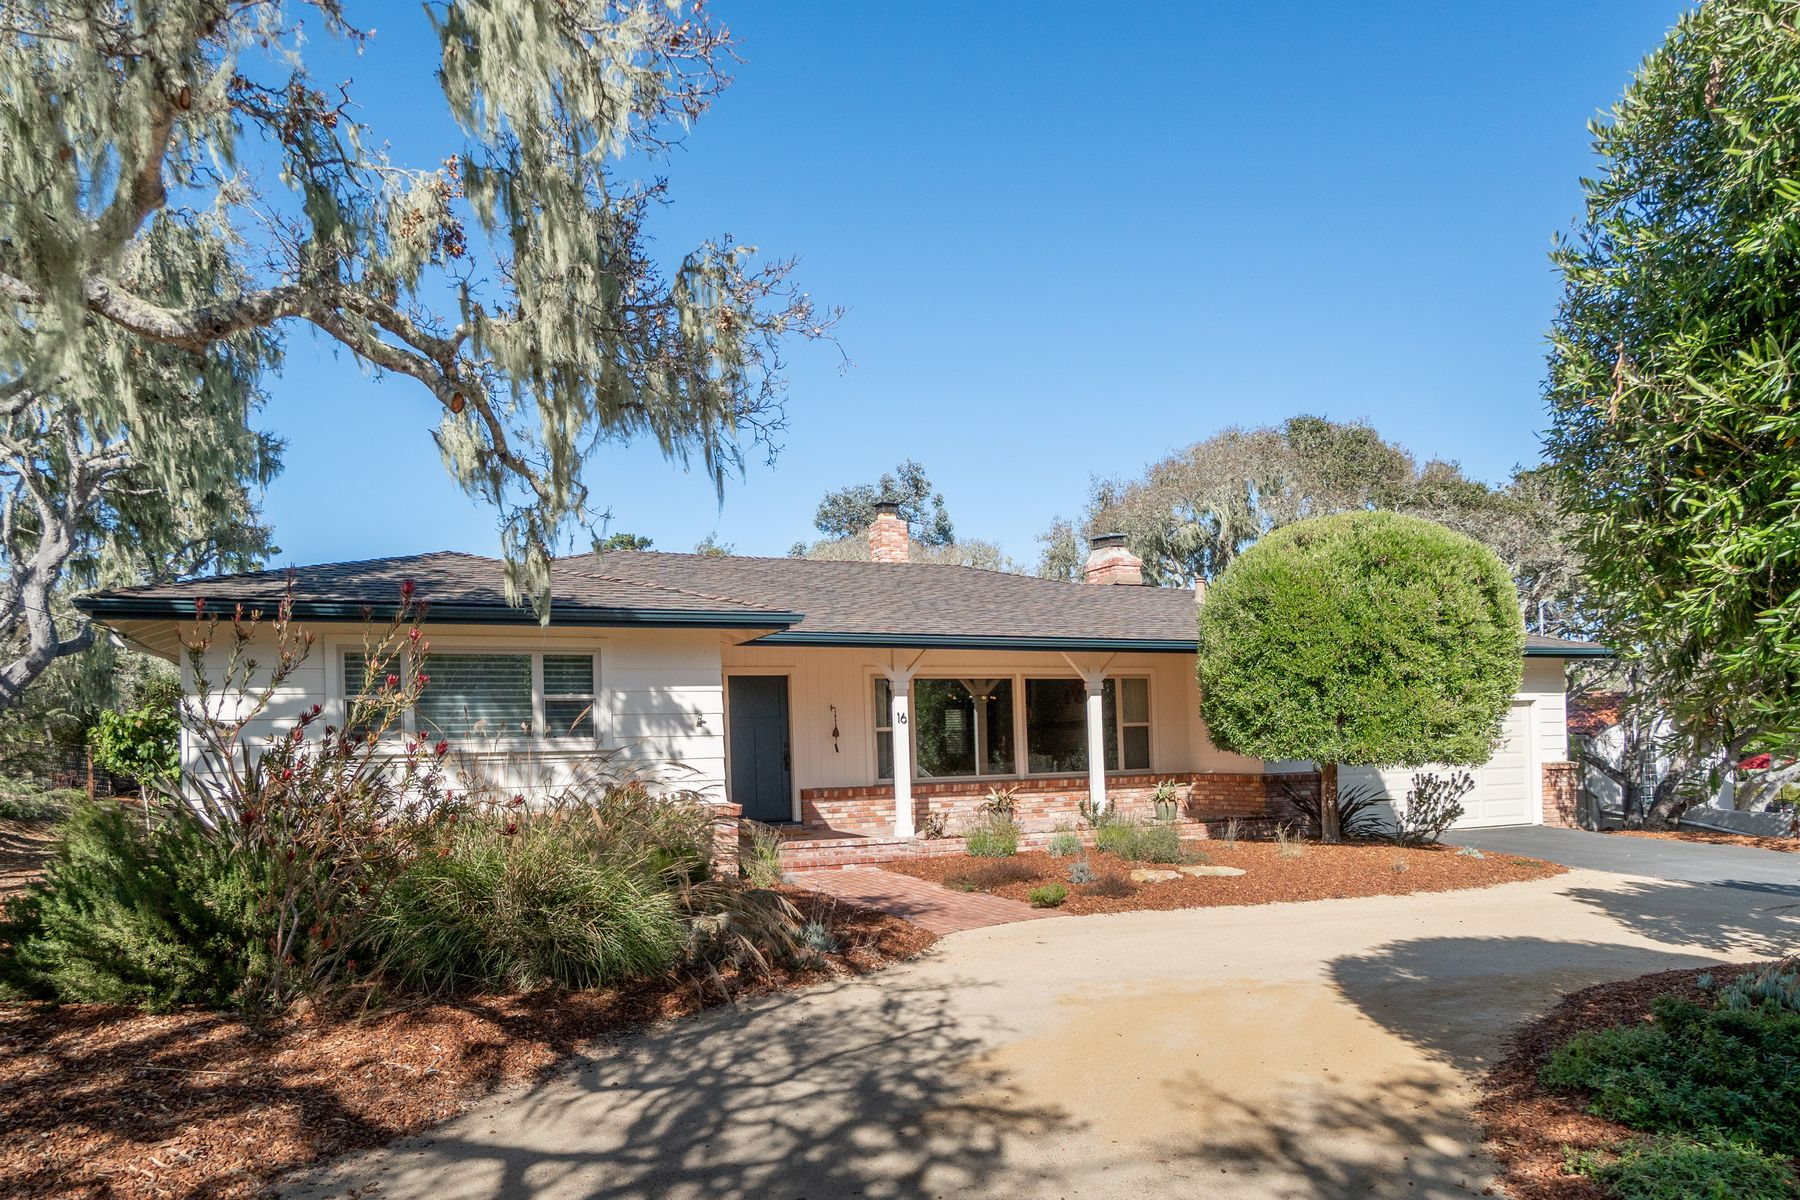 Single Family Homes for Sale at Beautifully Maintained Single Story Home 16 El Caminito Del Sur Monterey, California 93940 United States